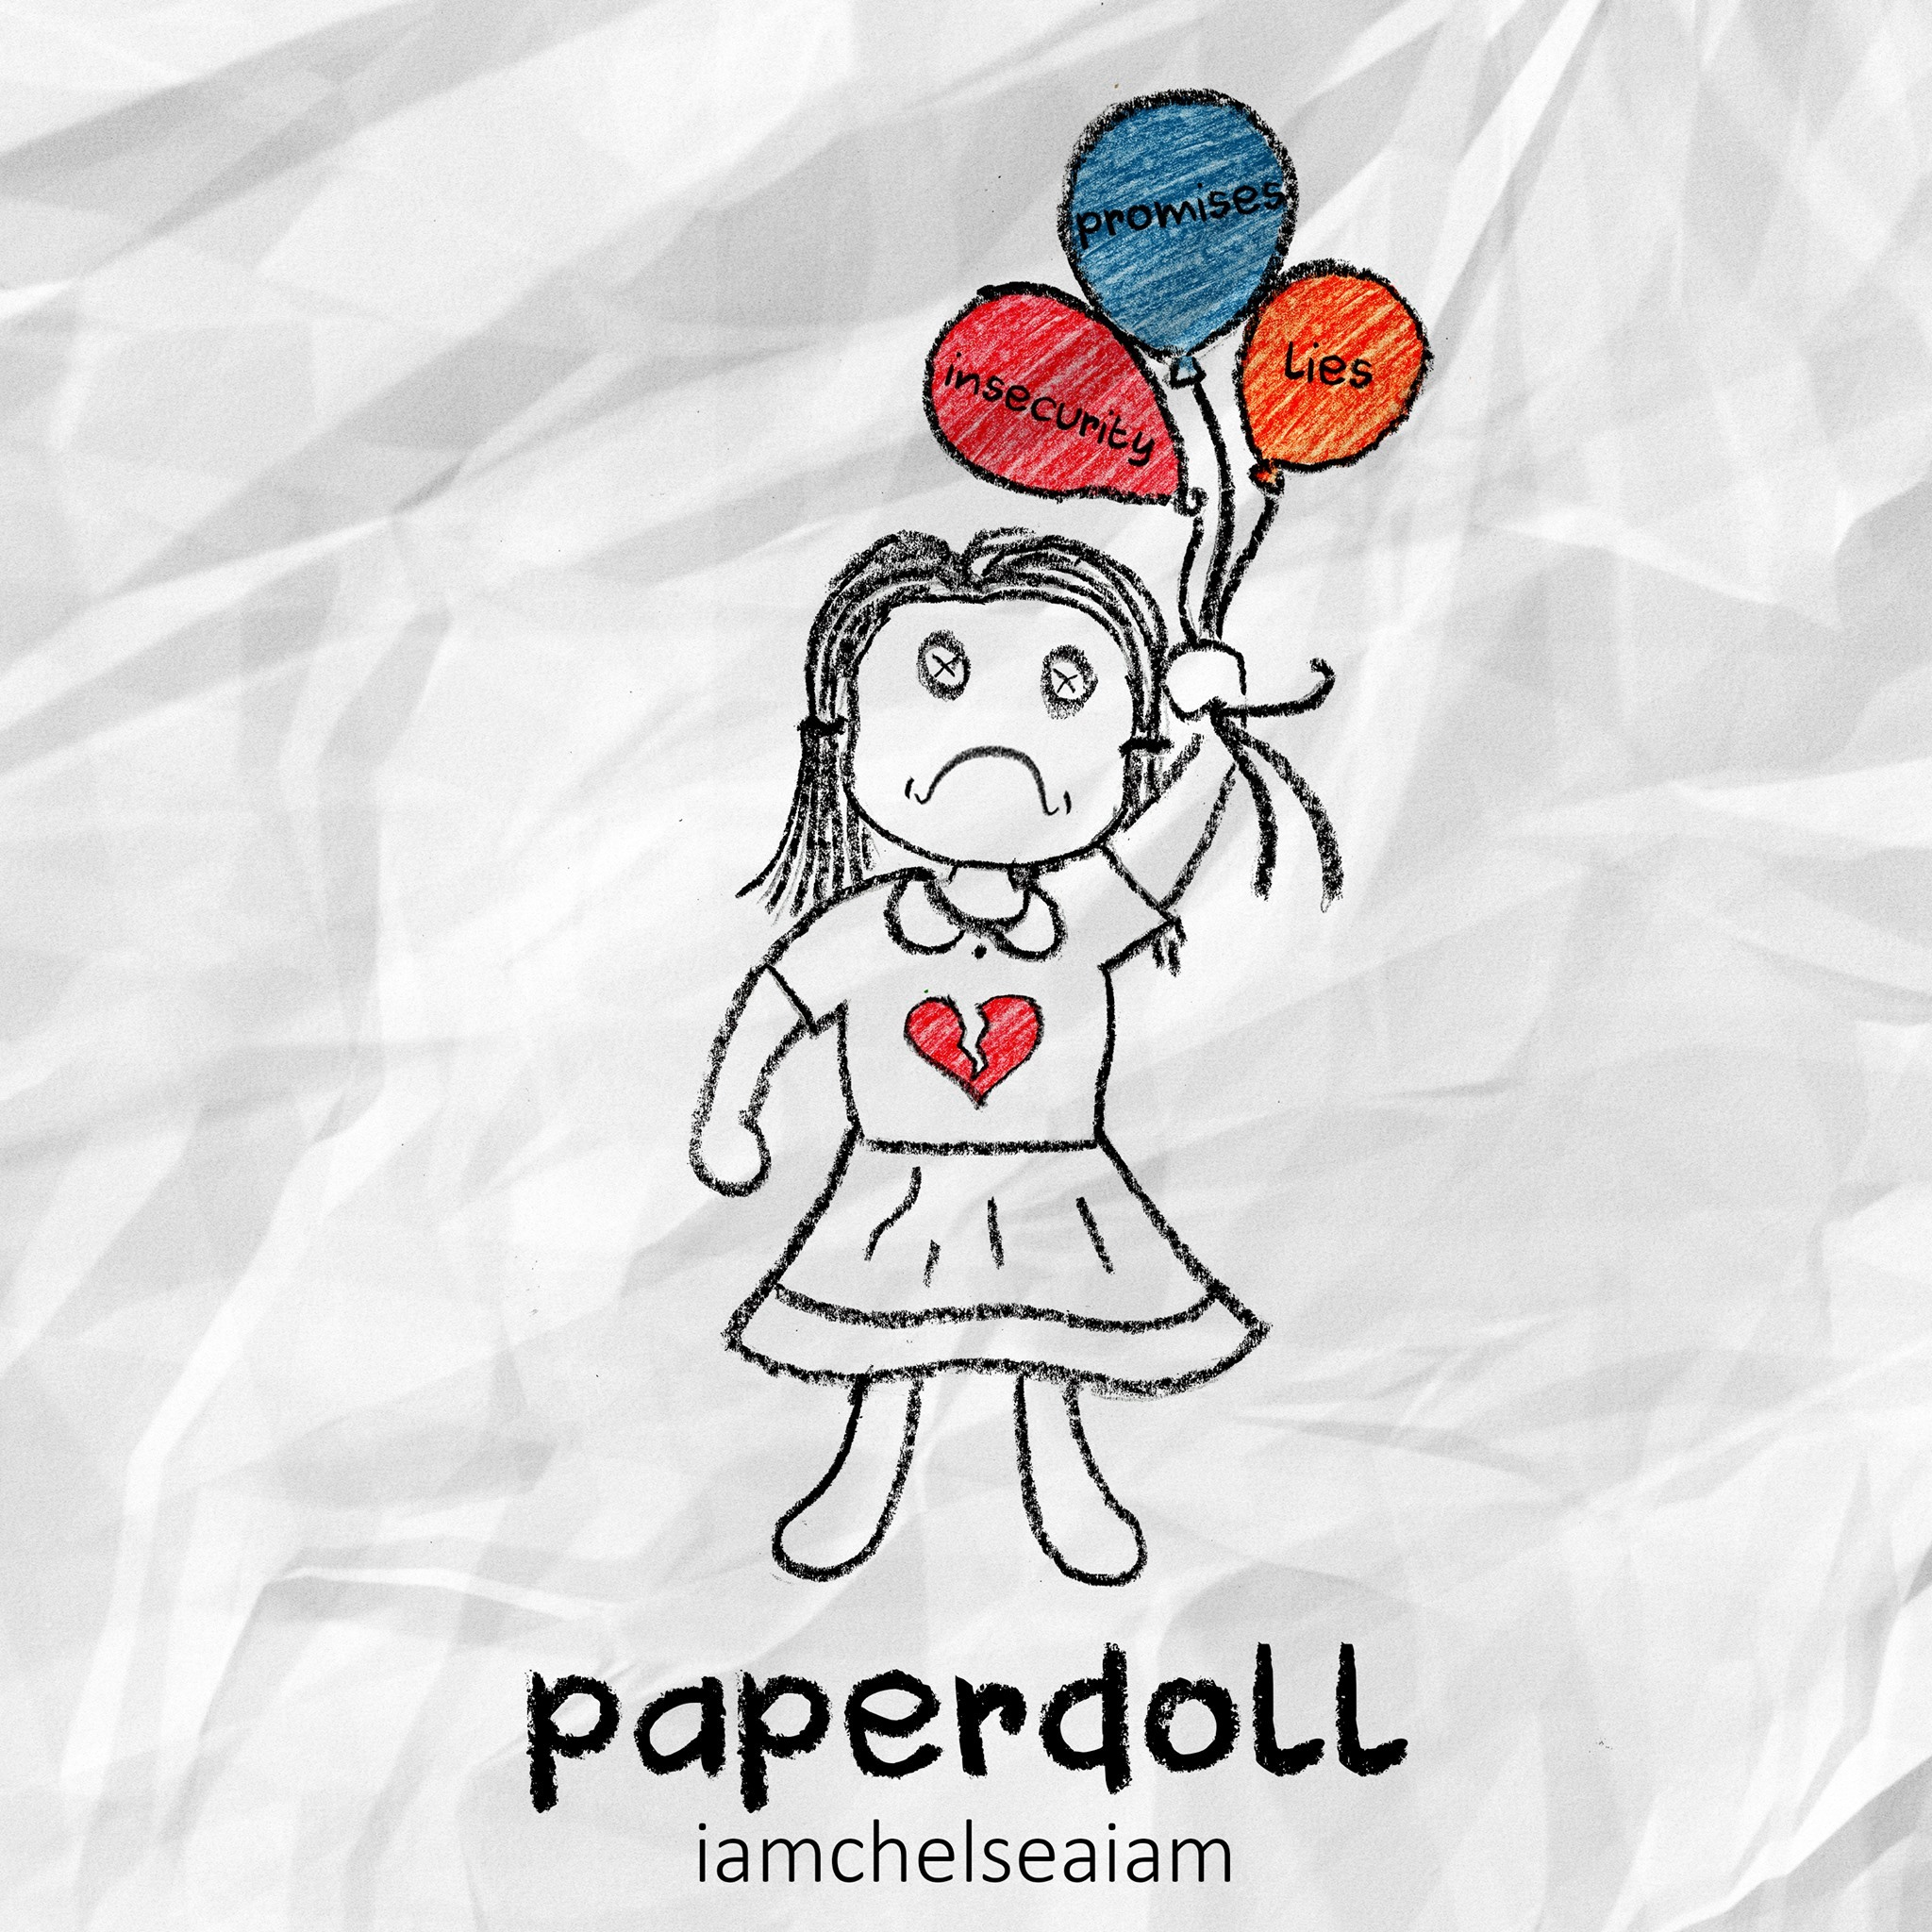 iamchelseaiam paperdoll